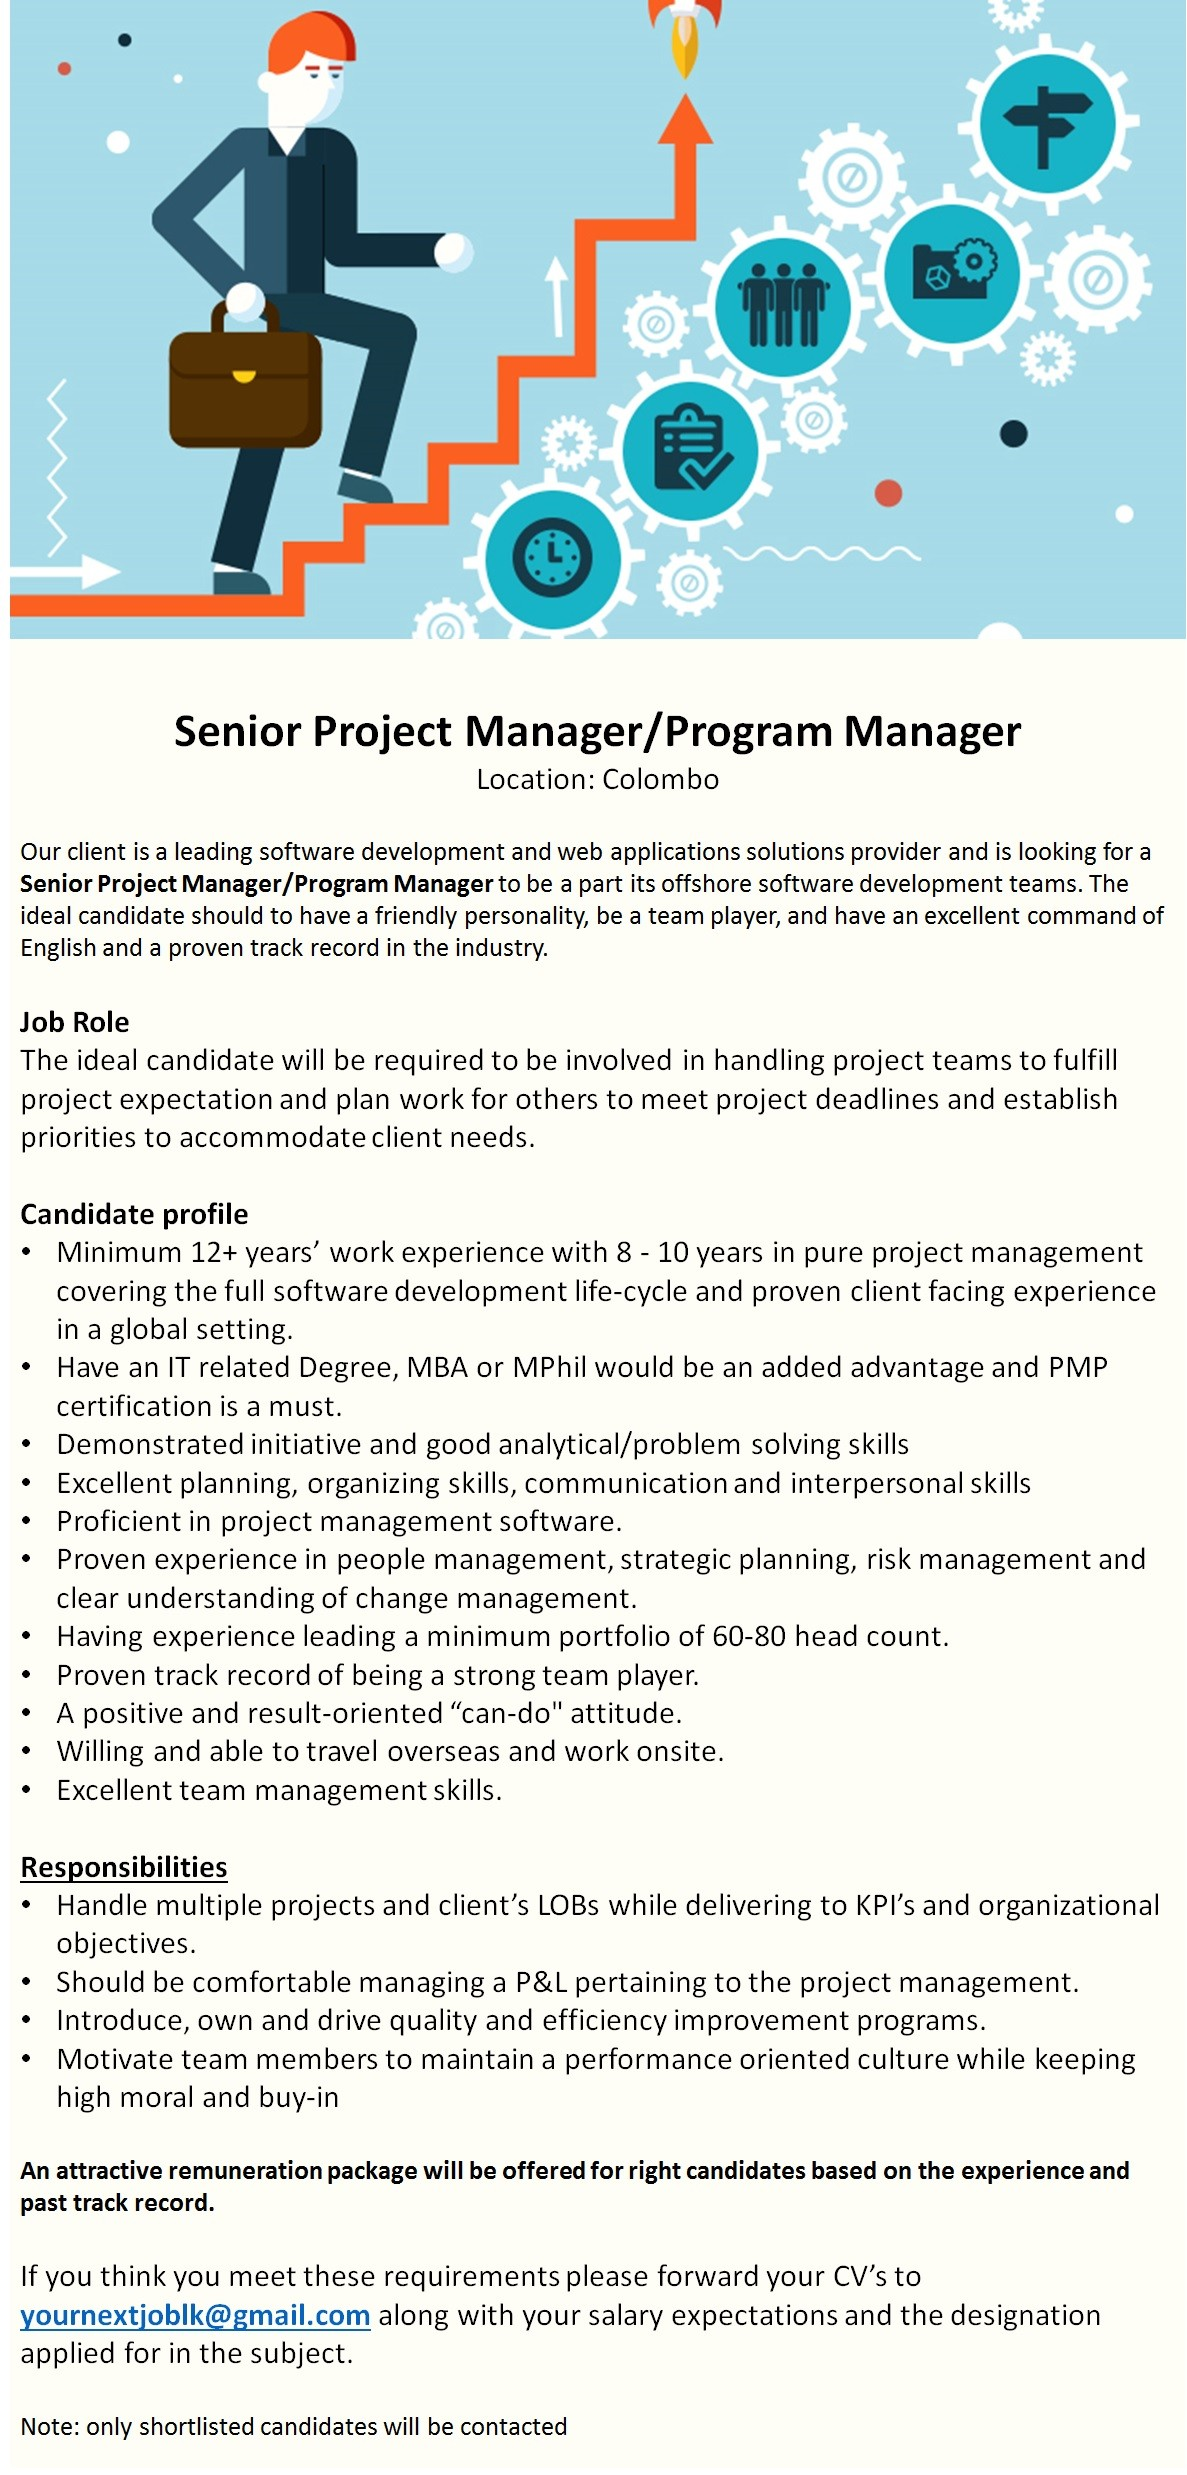 senior project manager program manager job vacancy in sri lanka candidate profile minimum 12 years work experience 8 10 years in pure project management covering the full software development life cycle and